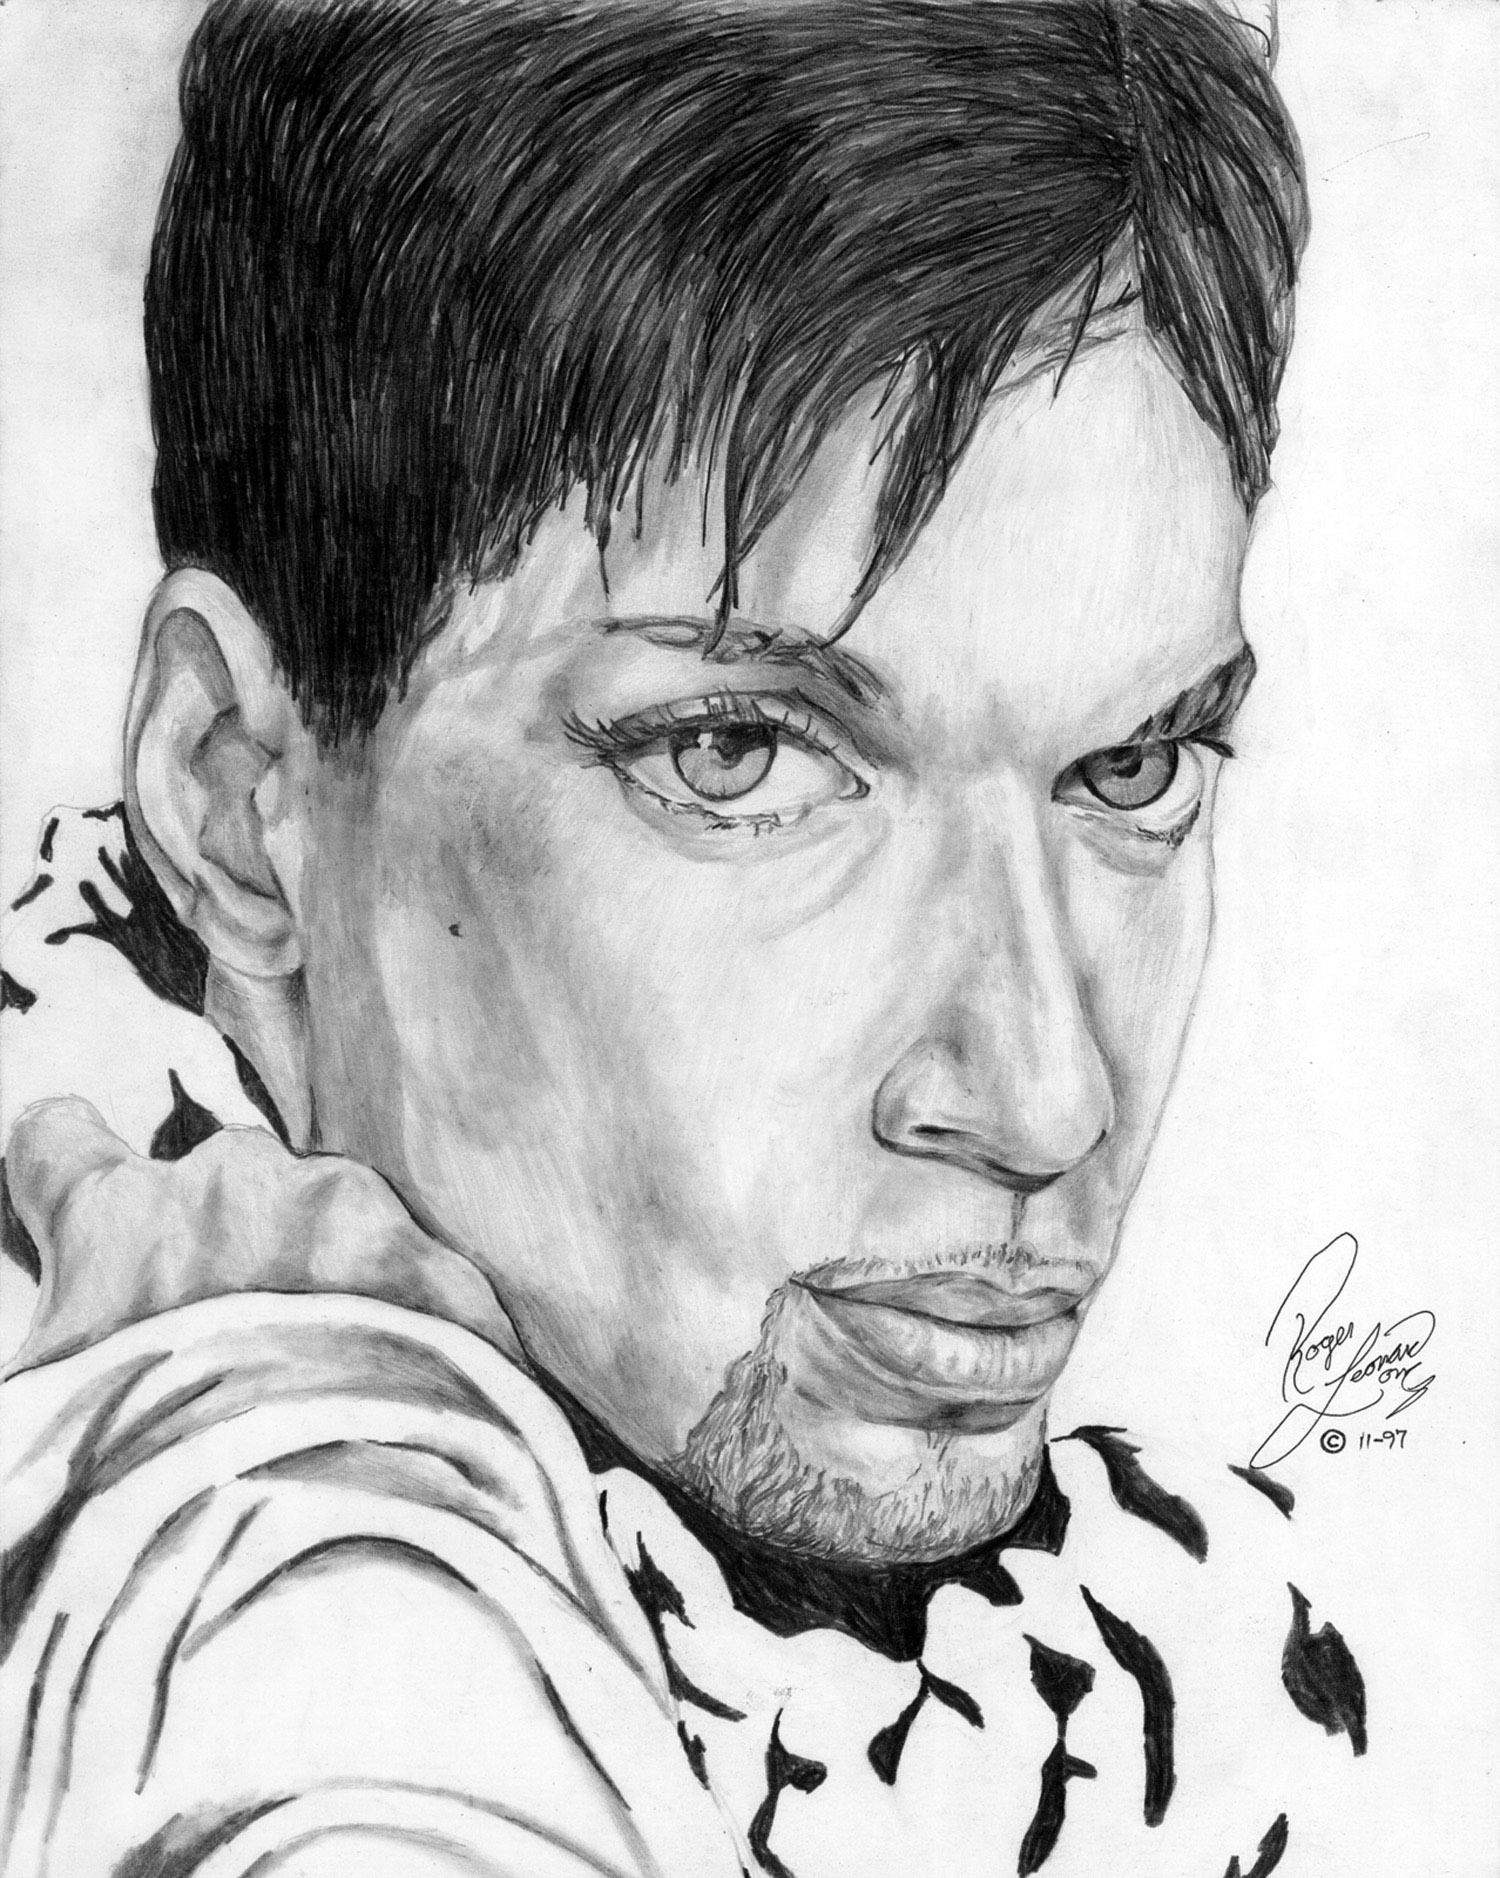 """Prince Fine Art Portrait Print """"Lovesexy'"""" by Roger Leonard Long Dimensions: """"11 X 14"""" (unframed) This is an exclusive print. It features my photo realistic portrait drawing of Prince. The original portrait was created with graphite It is part of my original collection of legendary cultural, musical figures. The print is delivered securely and ready for easy mounting with a certificate of authenticity. For more info about me and my custom originals, visit the page """"order a custom original."""" Thank you for visiting a purchasing!"""